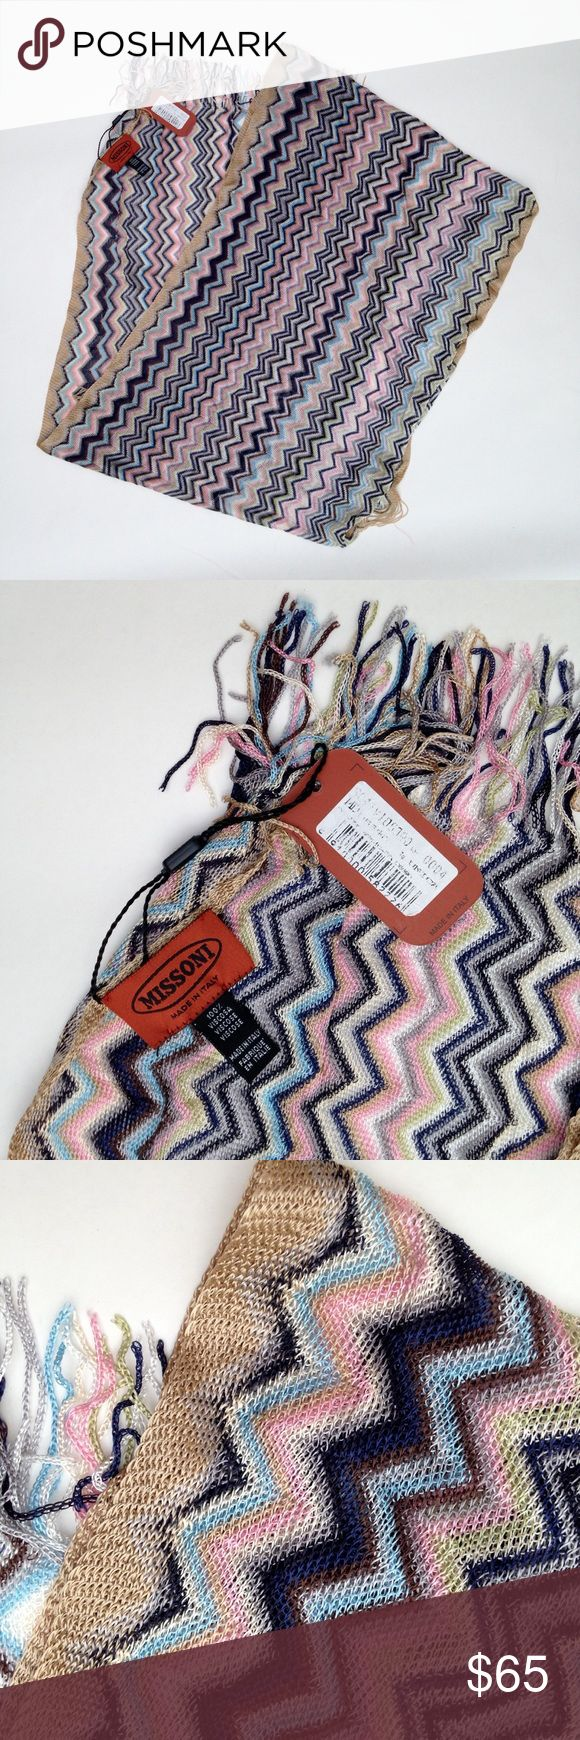 """Missoni scarf, Made in Italy 17"""" wide,  60"""" long, bought in Italy, perfect new condition Missoni Accessories Scarves & Wraps"""